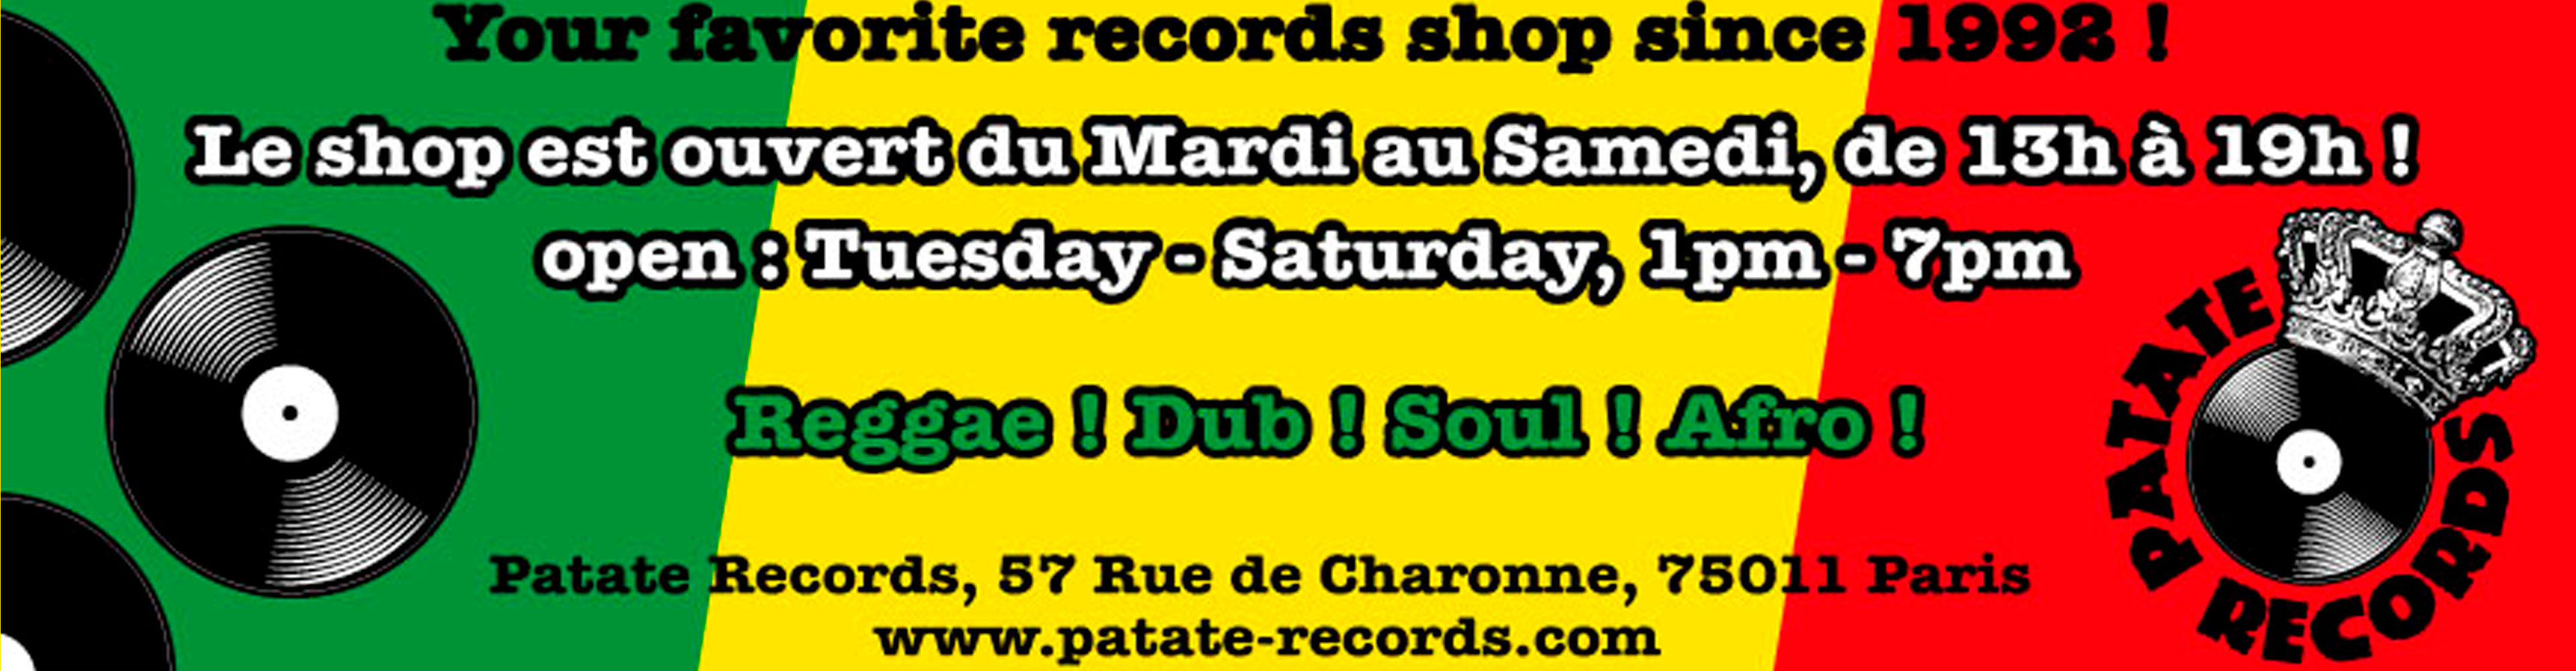 Patate Records Shop